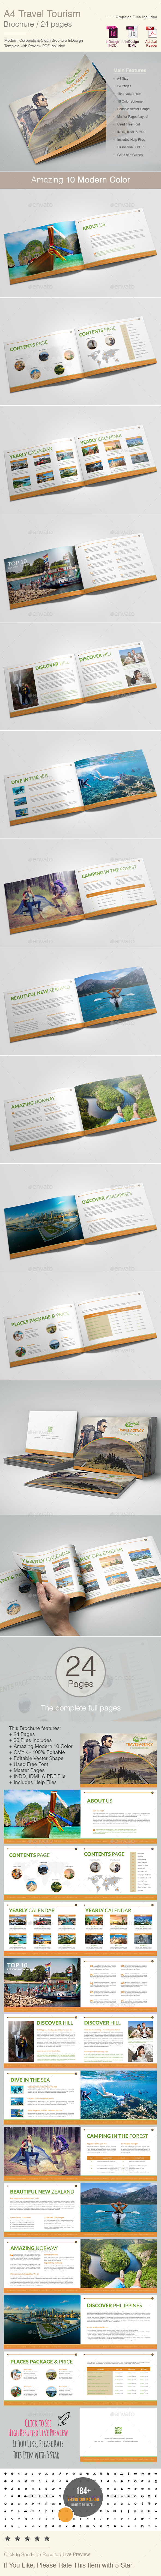 Travel Tourism Brochure Template - Catalogs Brochures